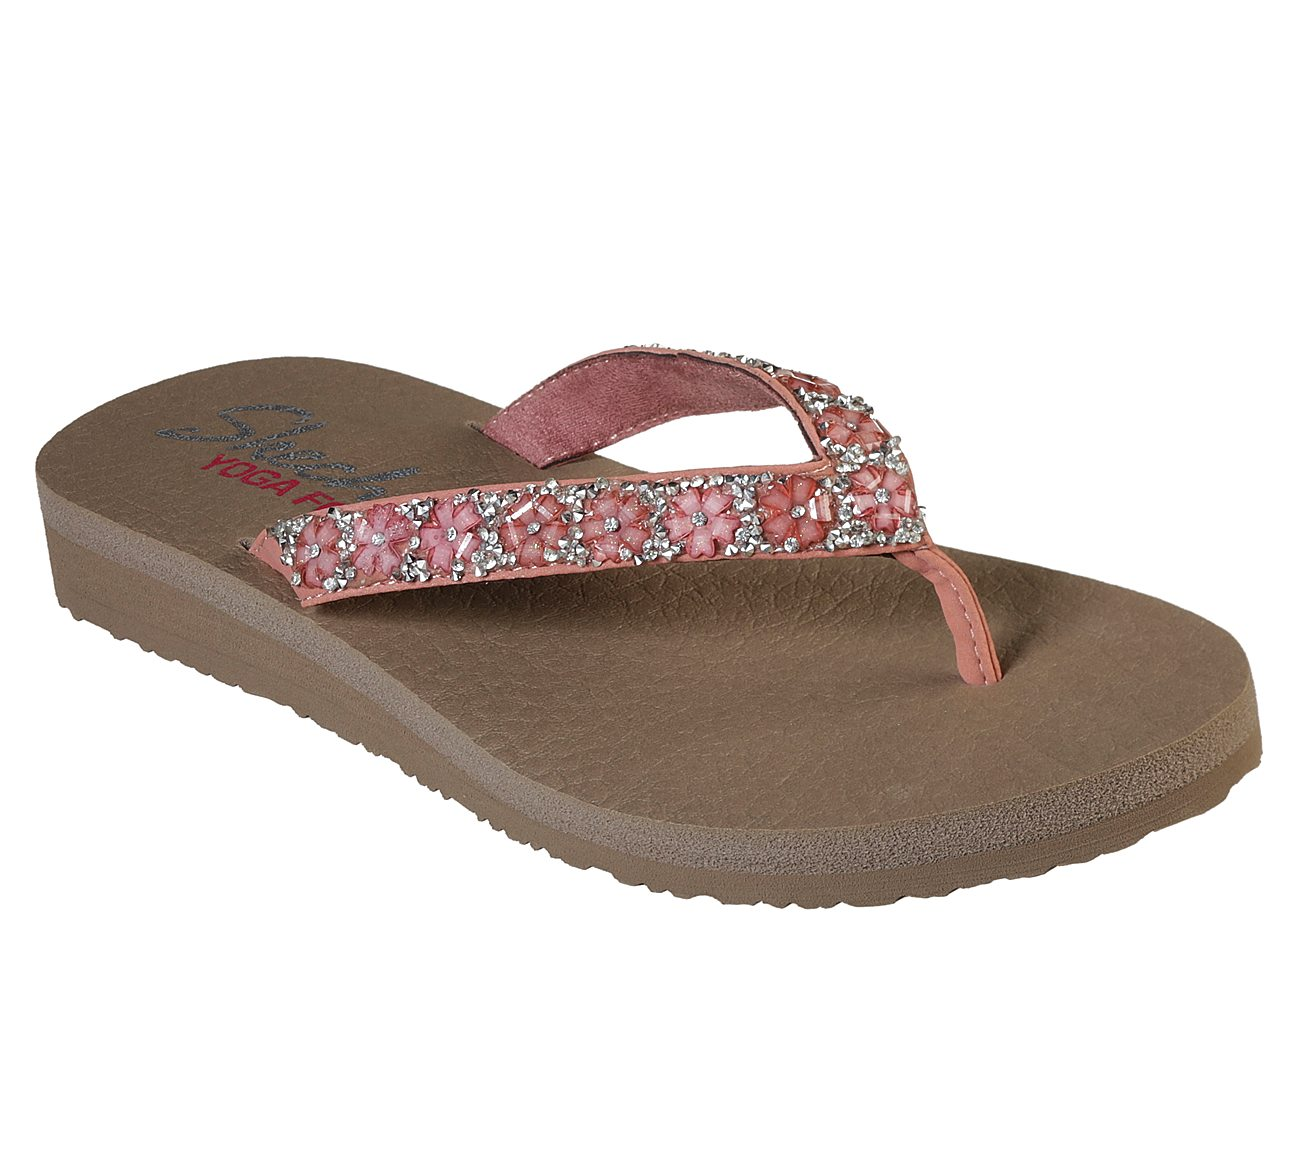 dcbee0a59b9c93 Buy SKECHERS Meditation - Daisy Delight Cali Shoes only  25.90